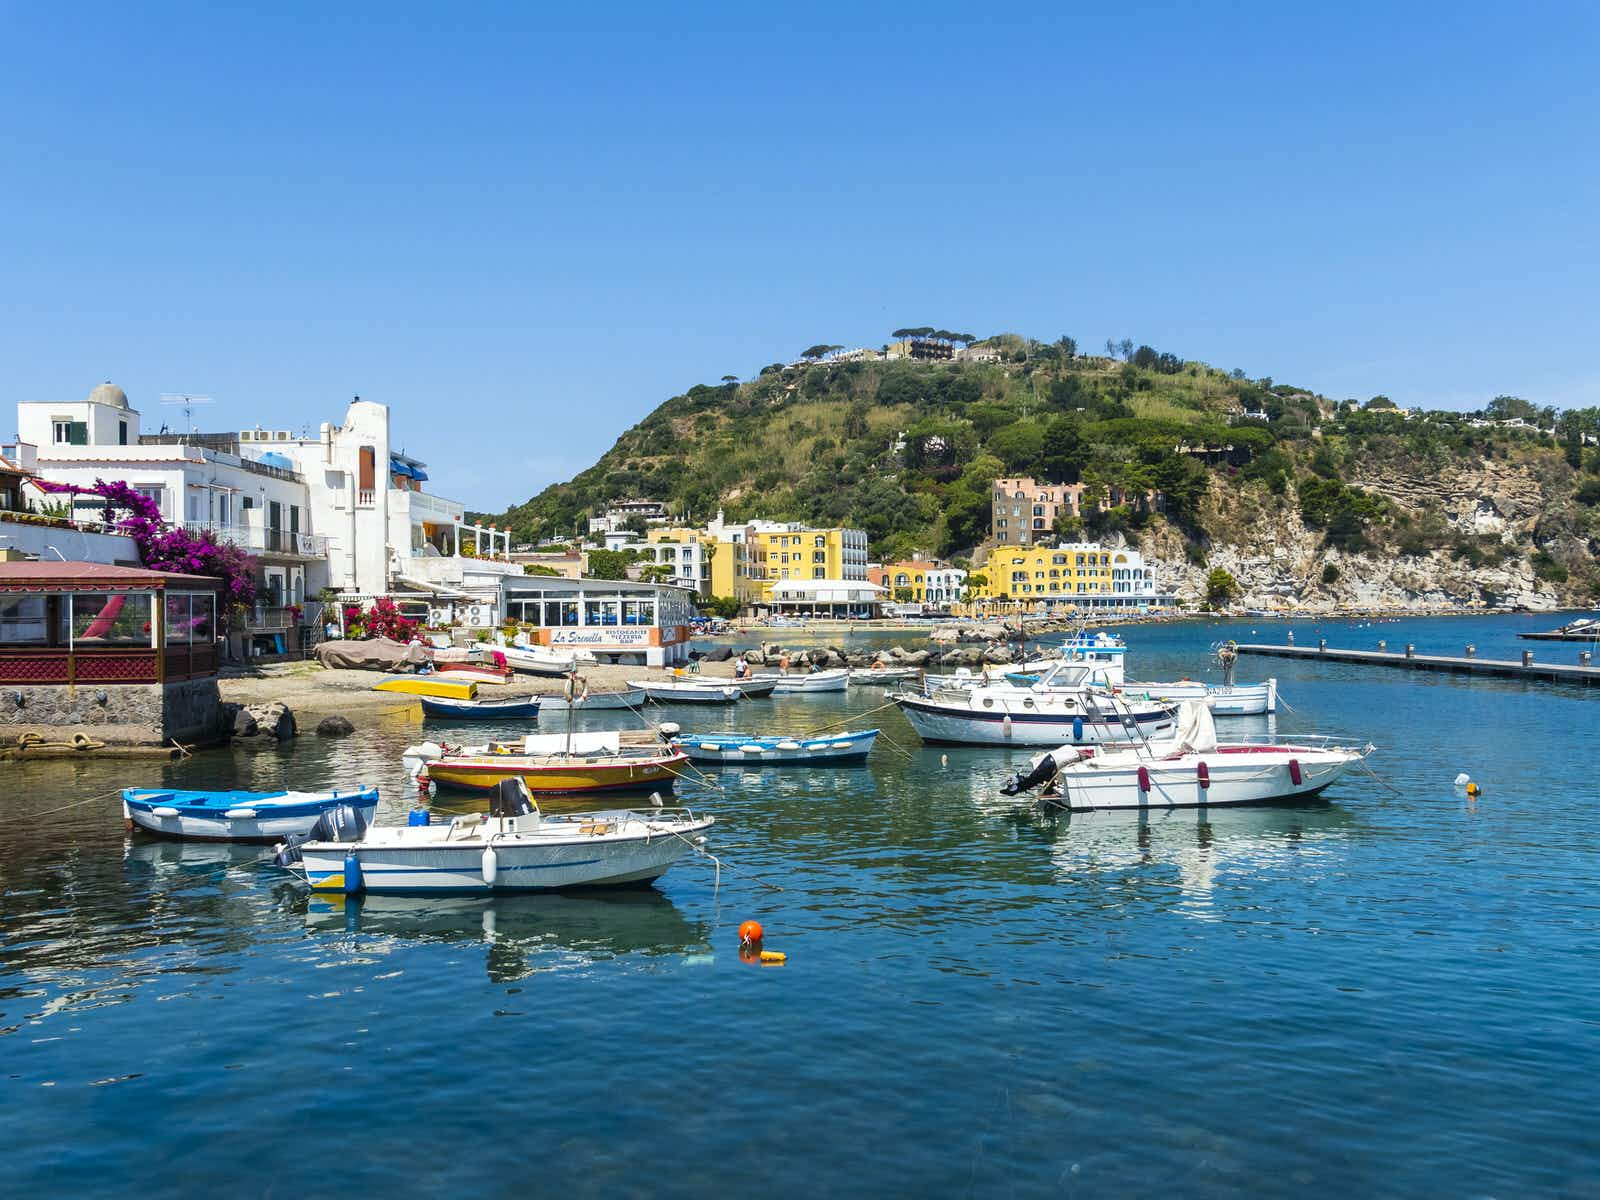 Picturesque Ischia is worth spending 20 extra minutes on a ferry to reach © Getty Images